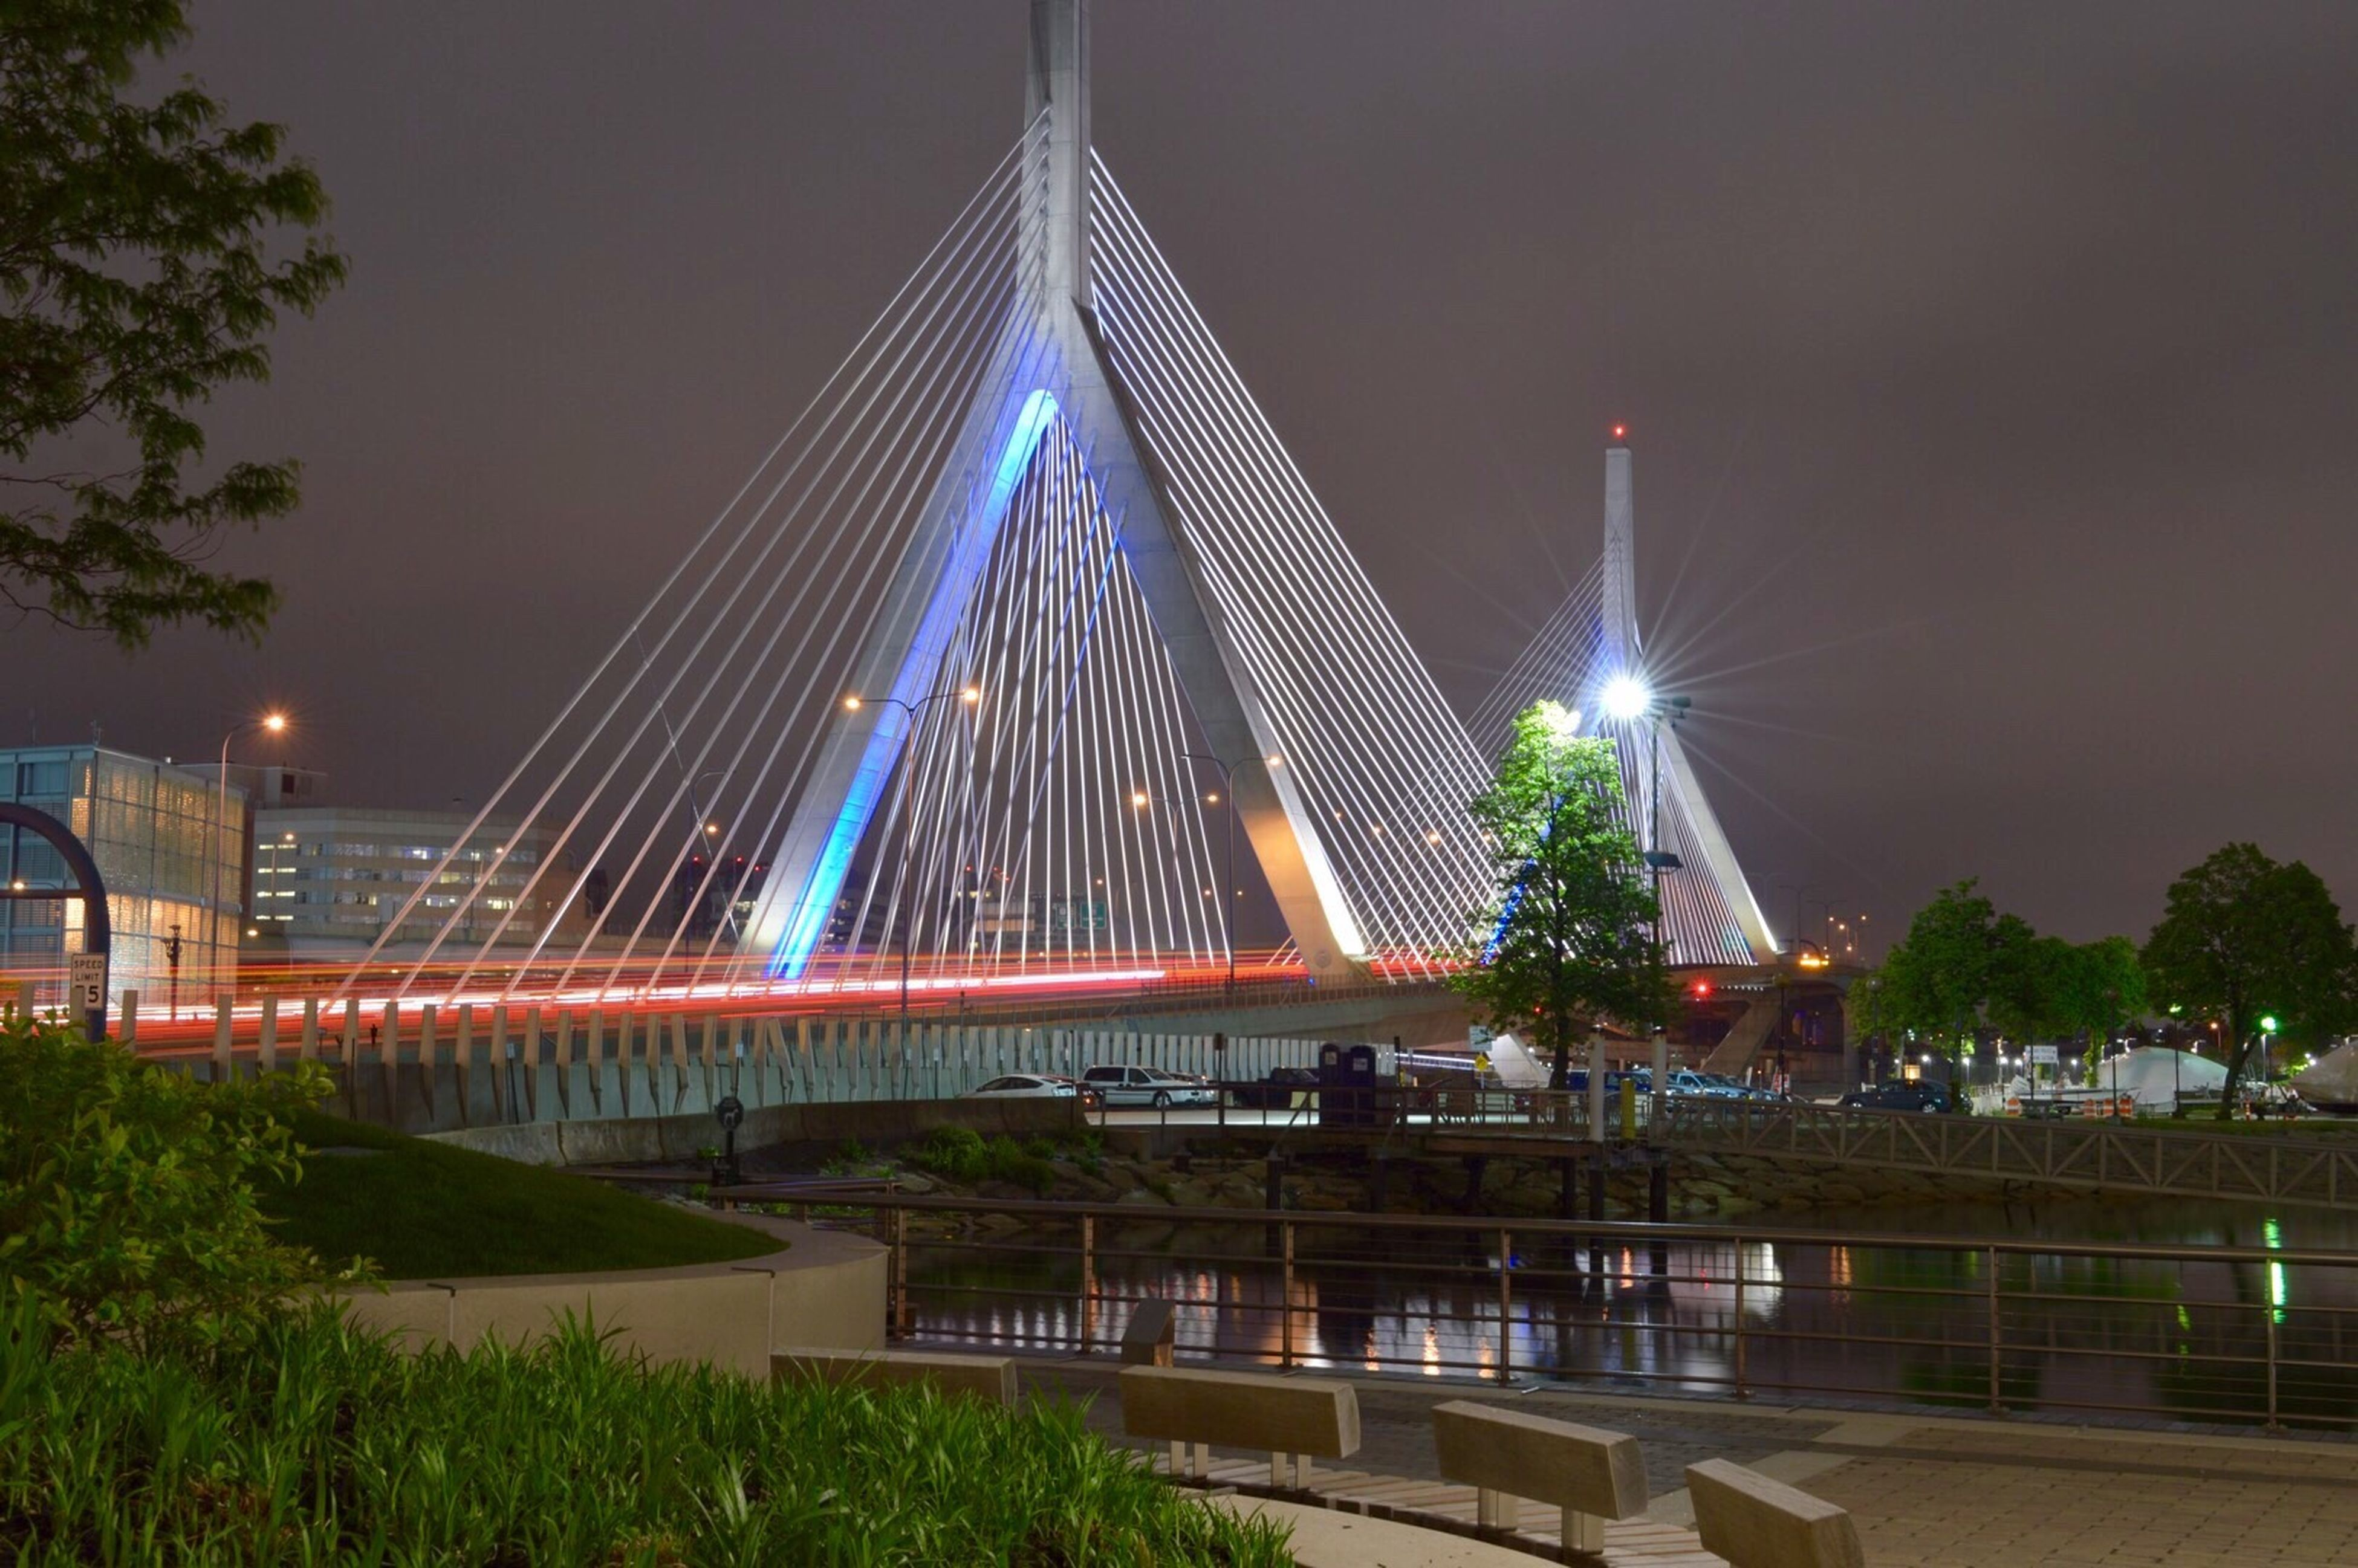 architecture, illuminated, built structure, night, outdoors, connection, bridge - man made structure, long exposure, tree, travel destinations, building exterior, no people, sky, water, city, nature